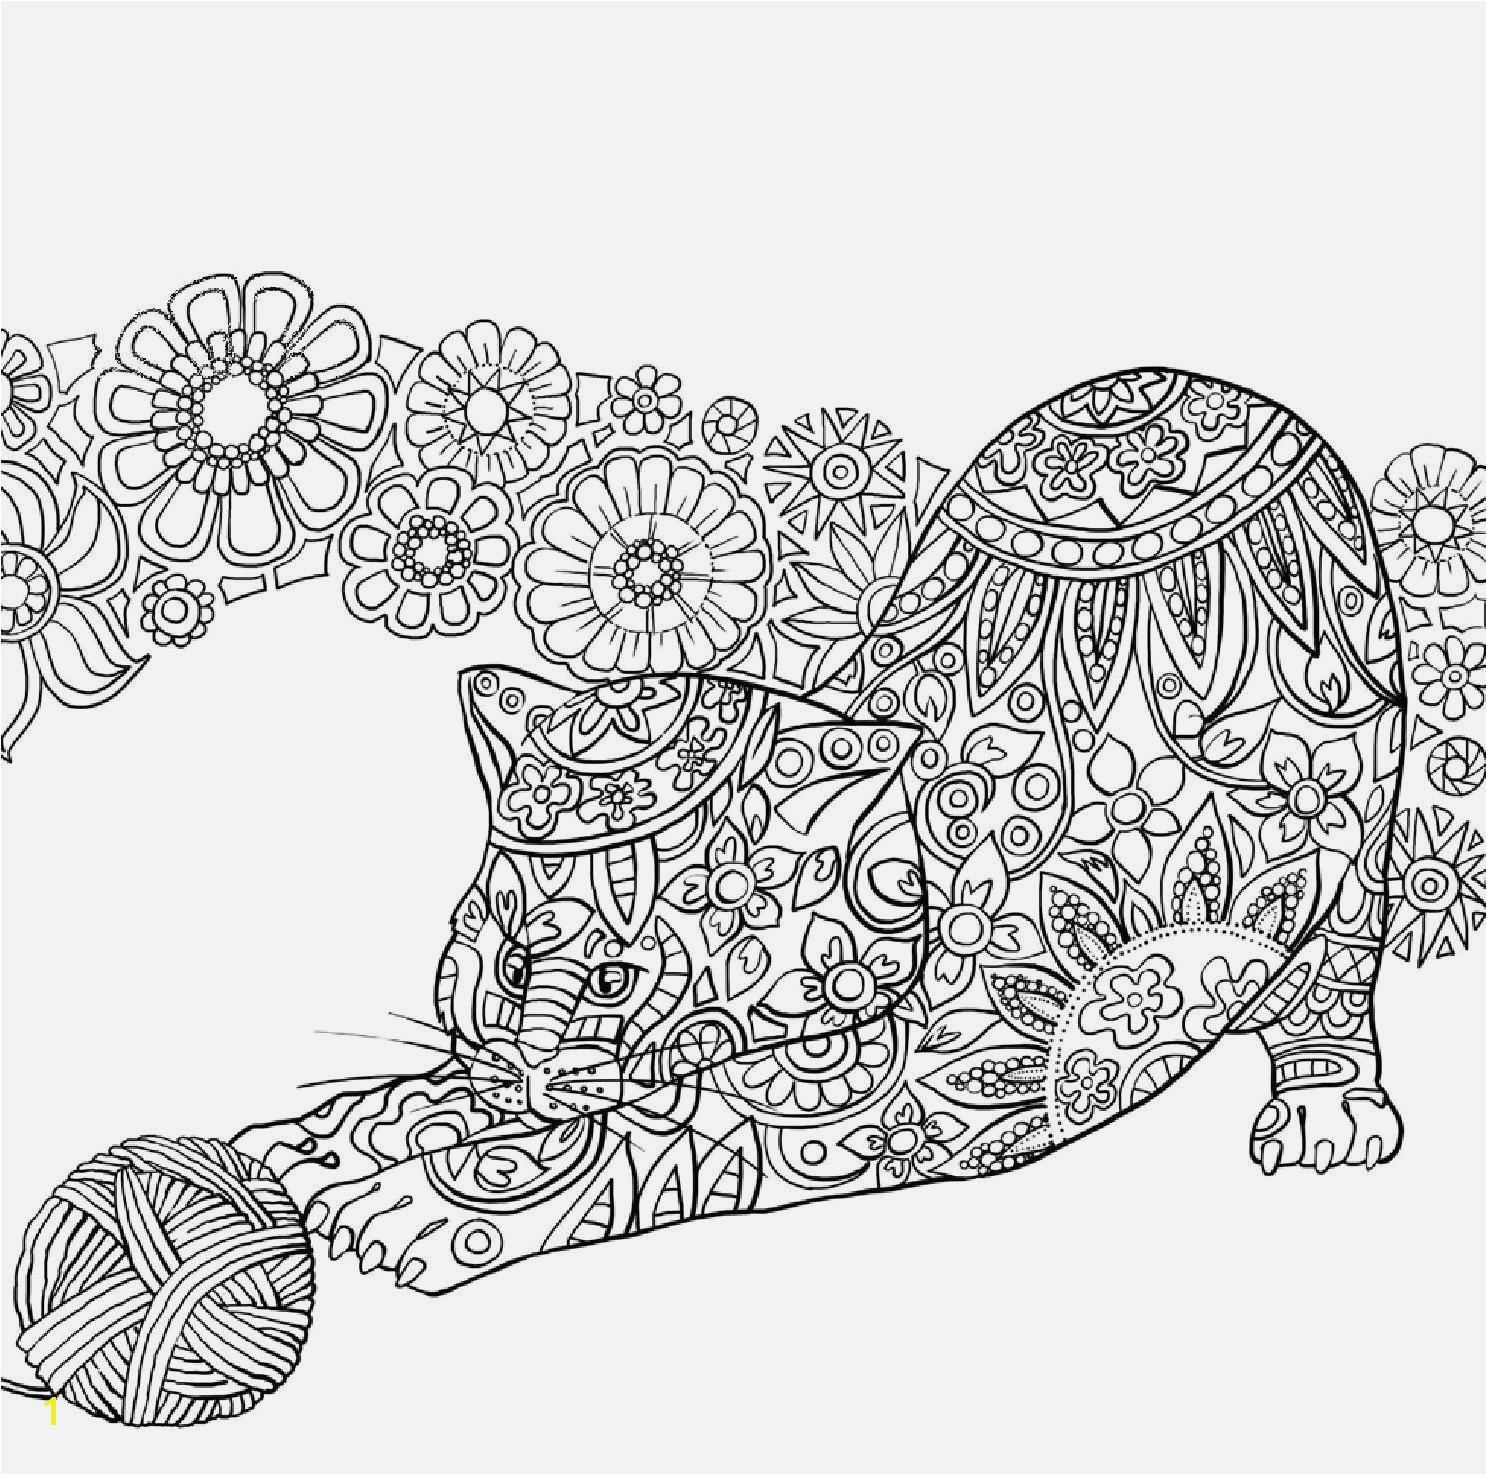 Blastoise Coloring Page Amazing Advantages Advanced Coloring Pages Beautiful Printable Advanced Coloring Pages